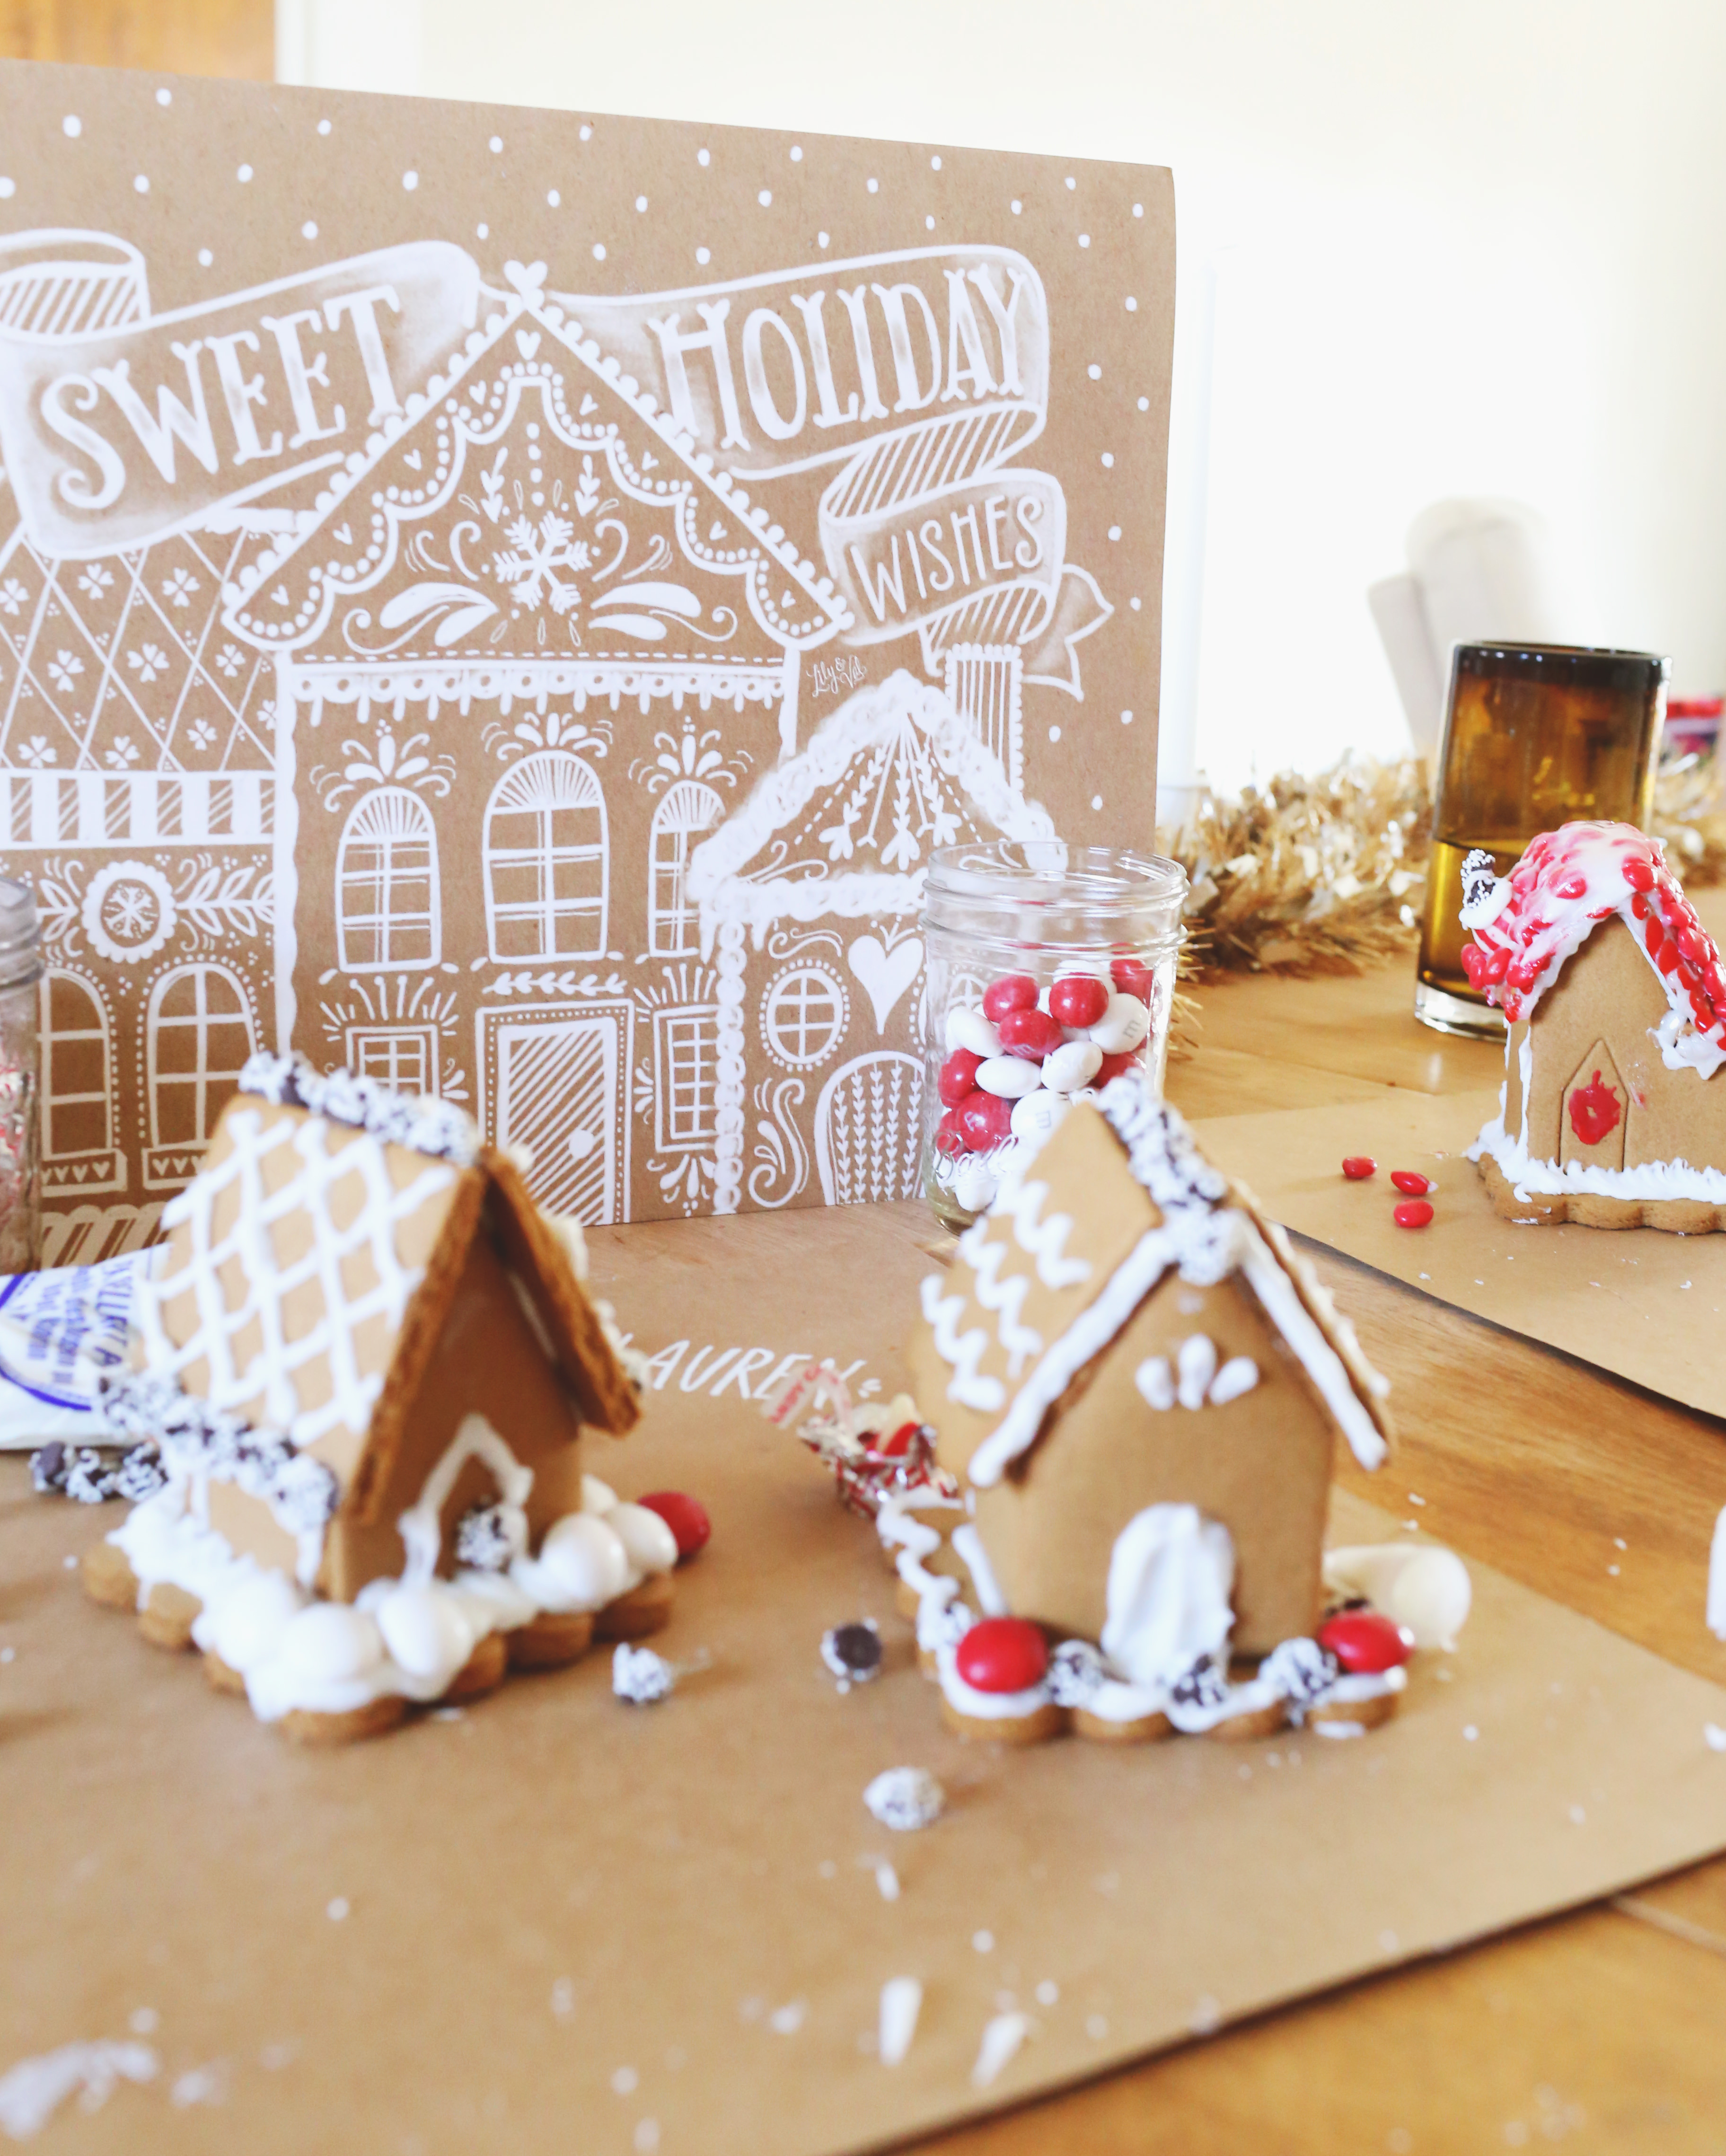 Sweet Holiday Wishes Kraft Art print by Lily & Val makes the perfect holiday decor for a gingerbread decorating party